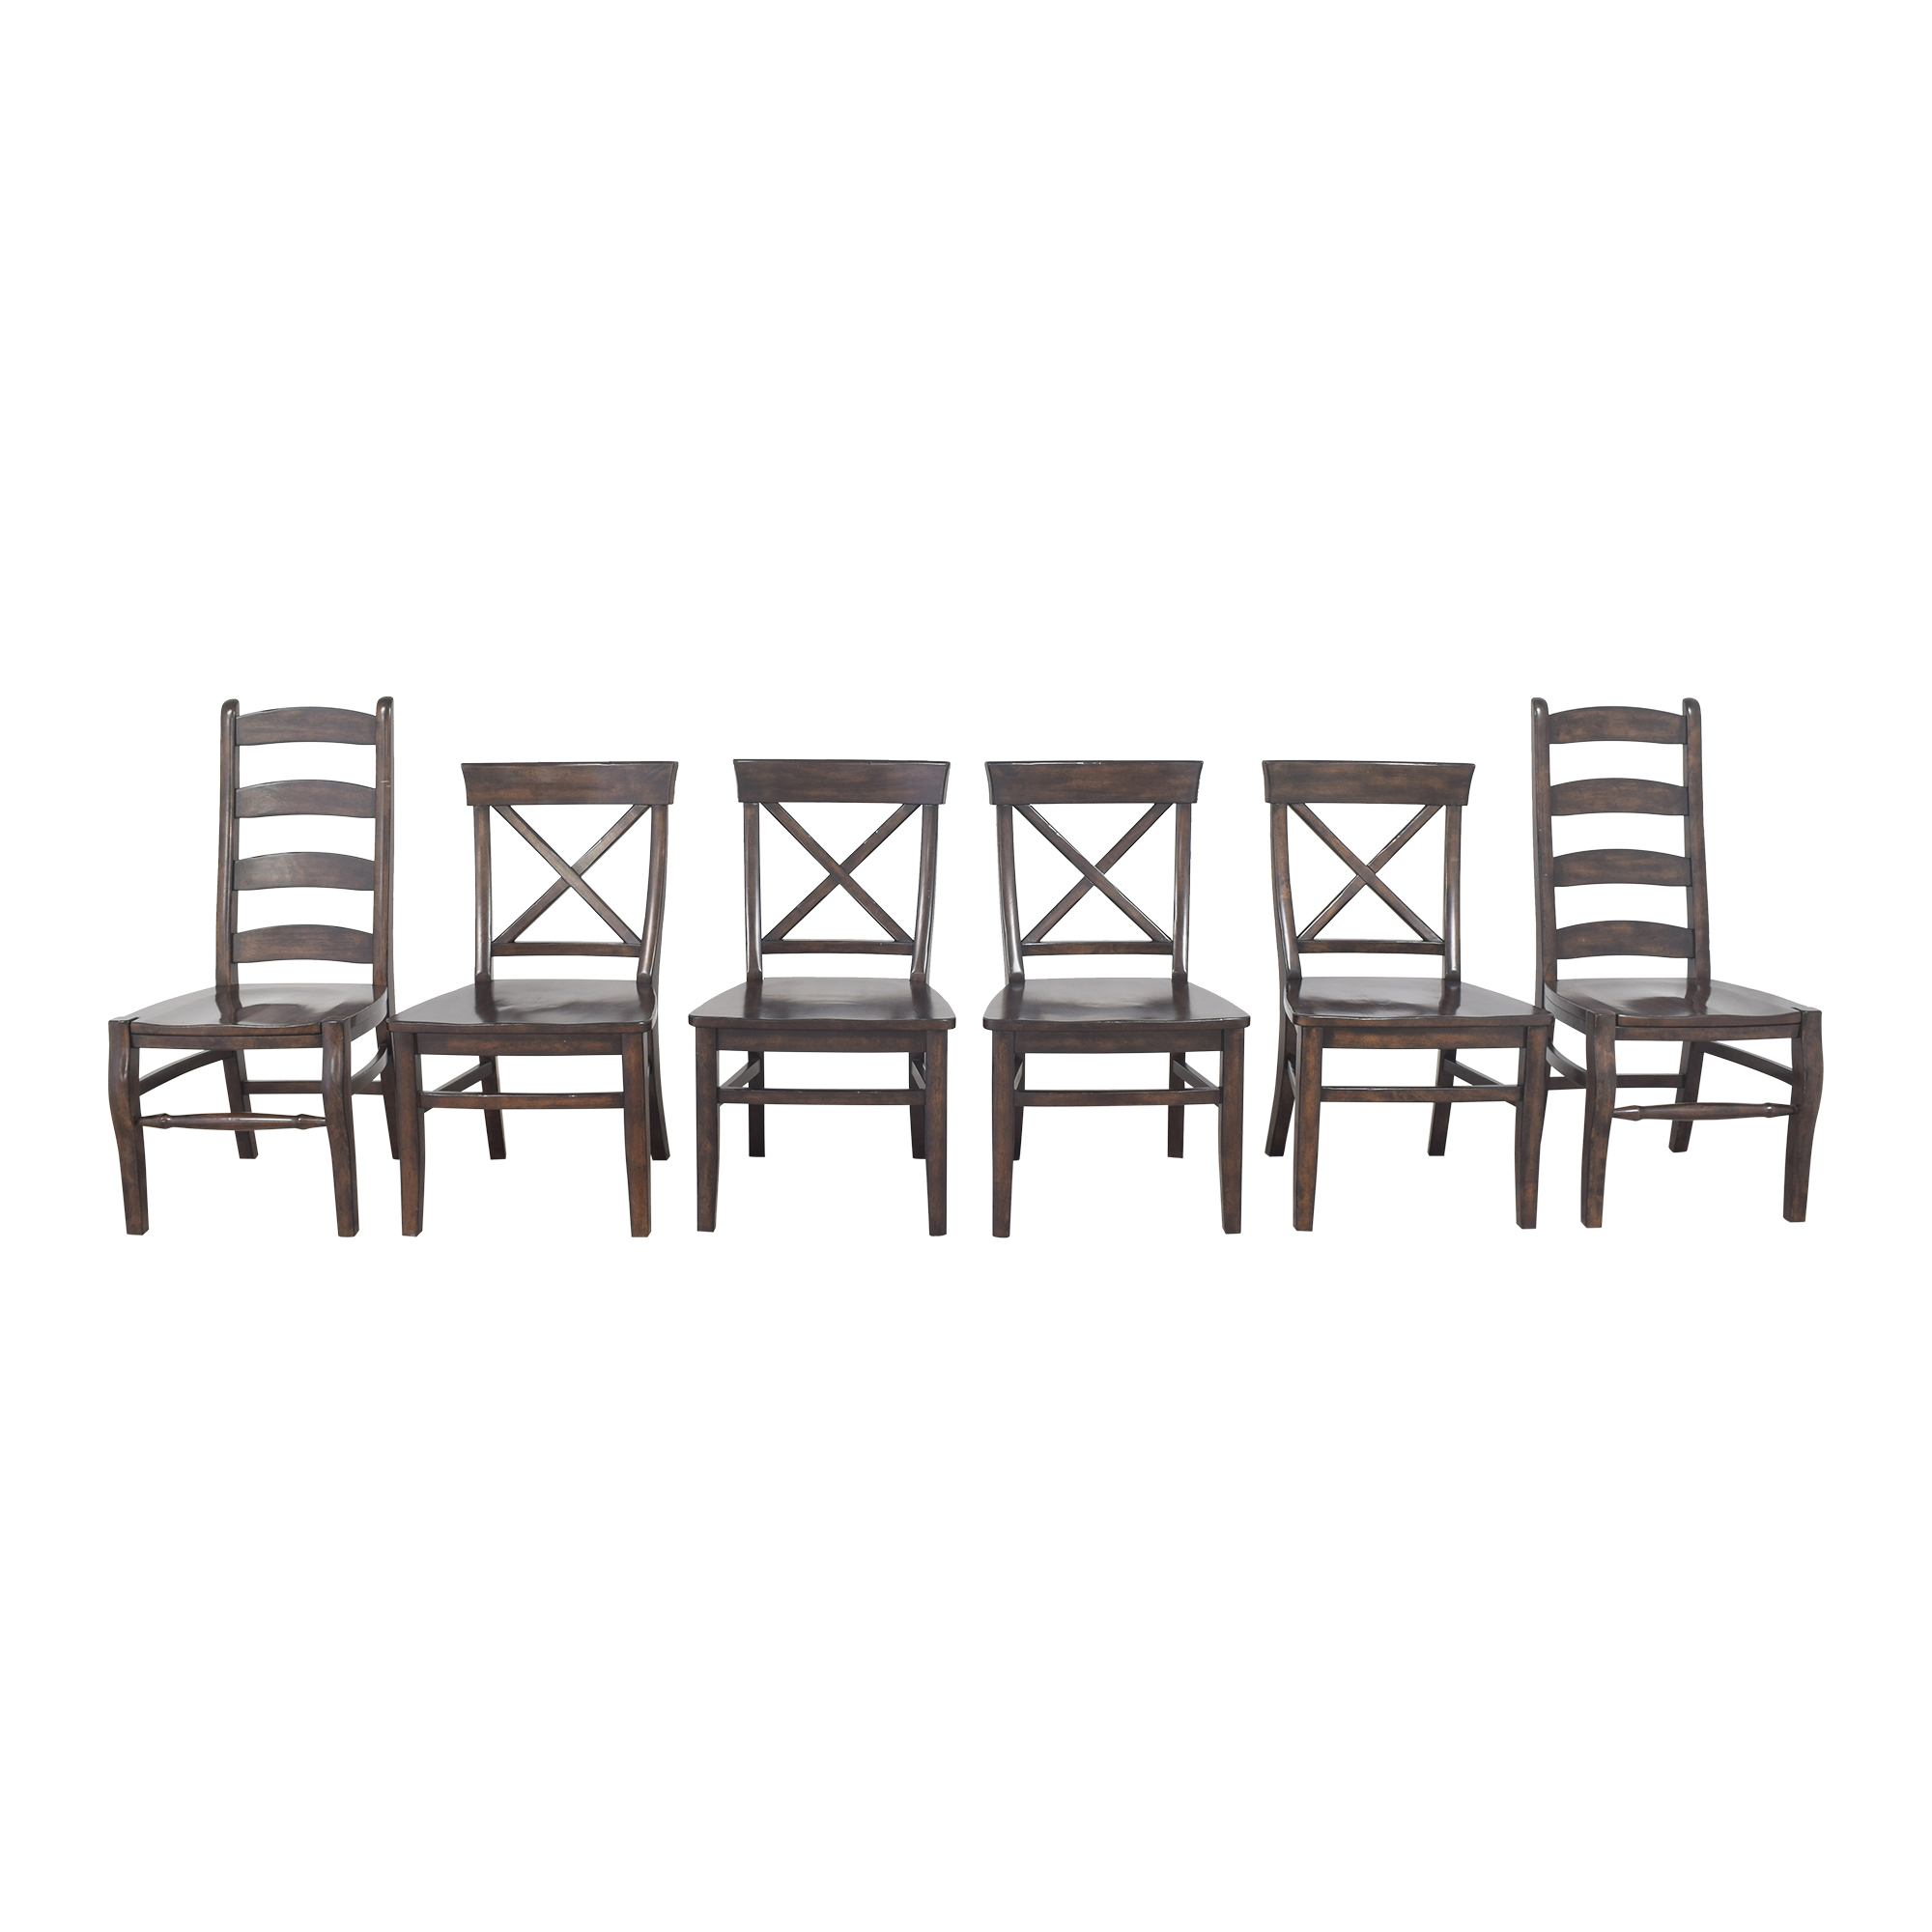 shop Pottery Barn Pottery Barn Aaron and Wynn Ladderback Dining Chairs online